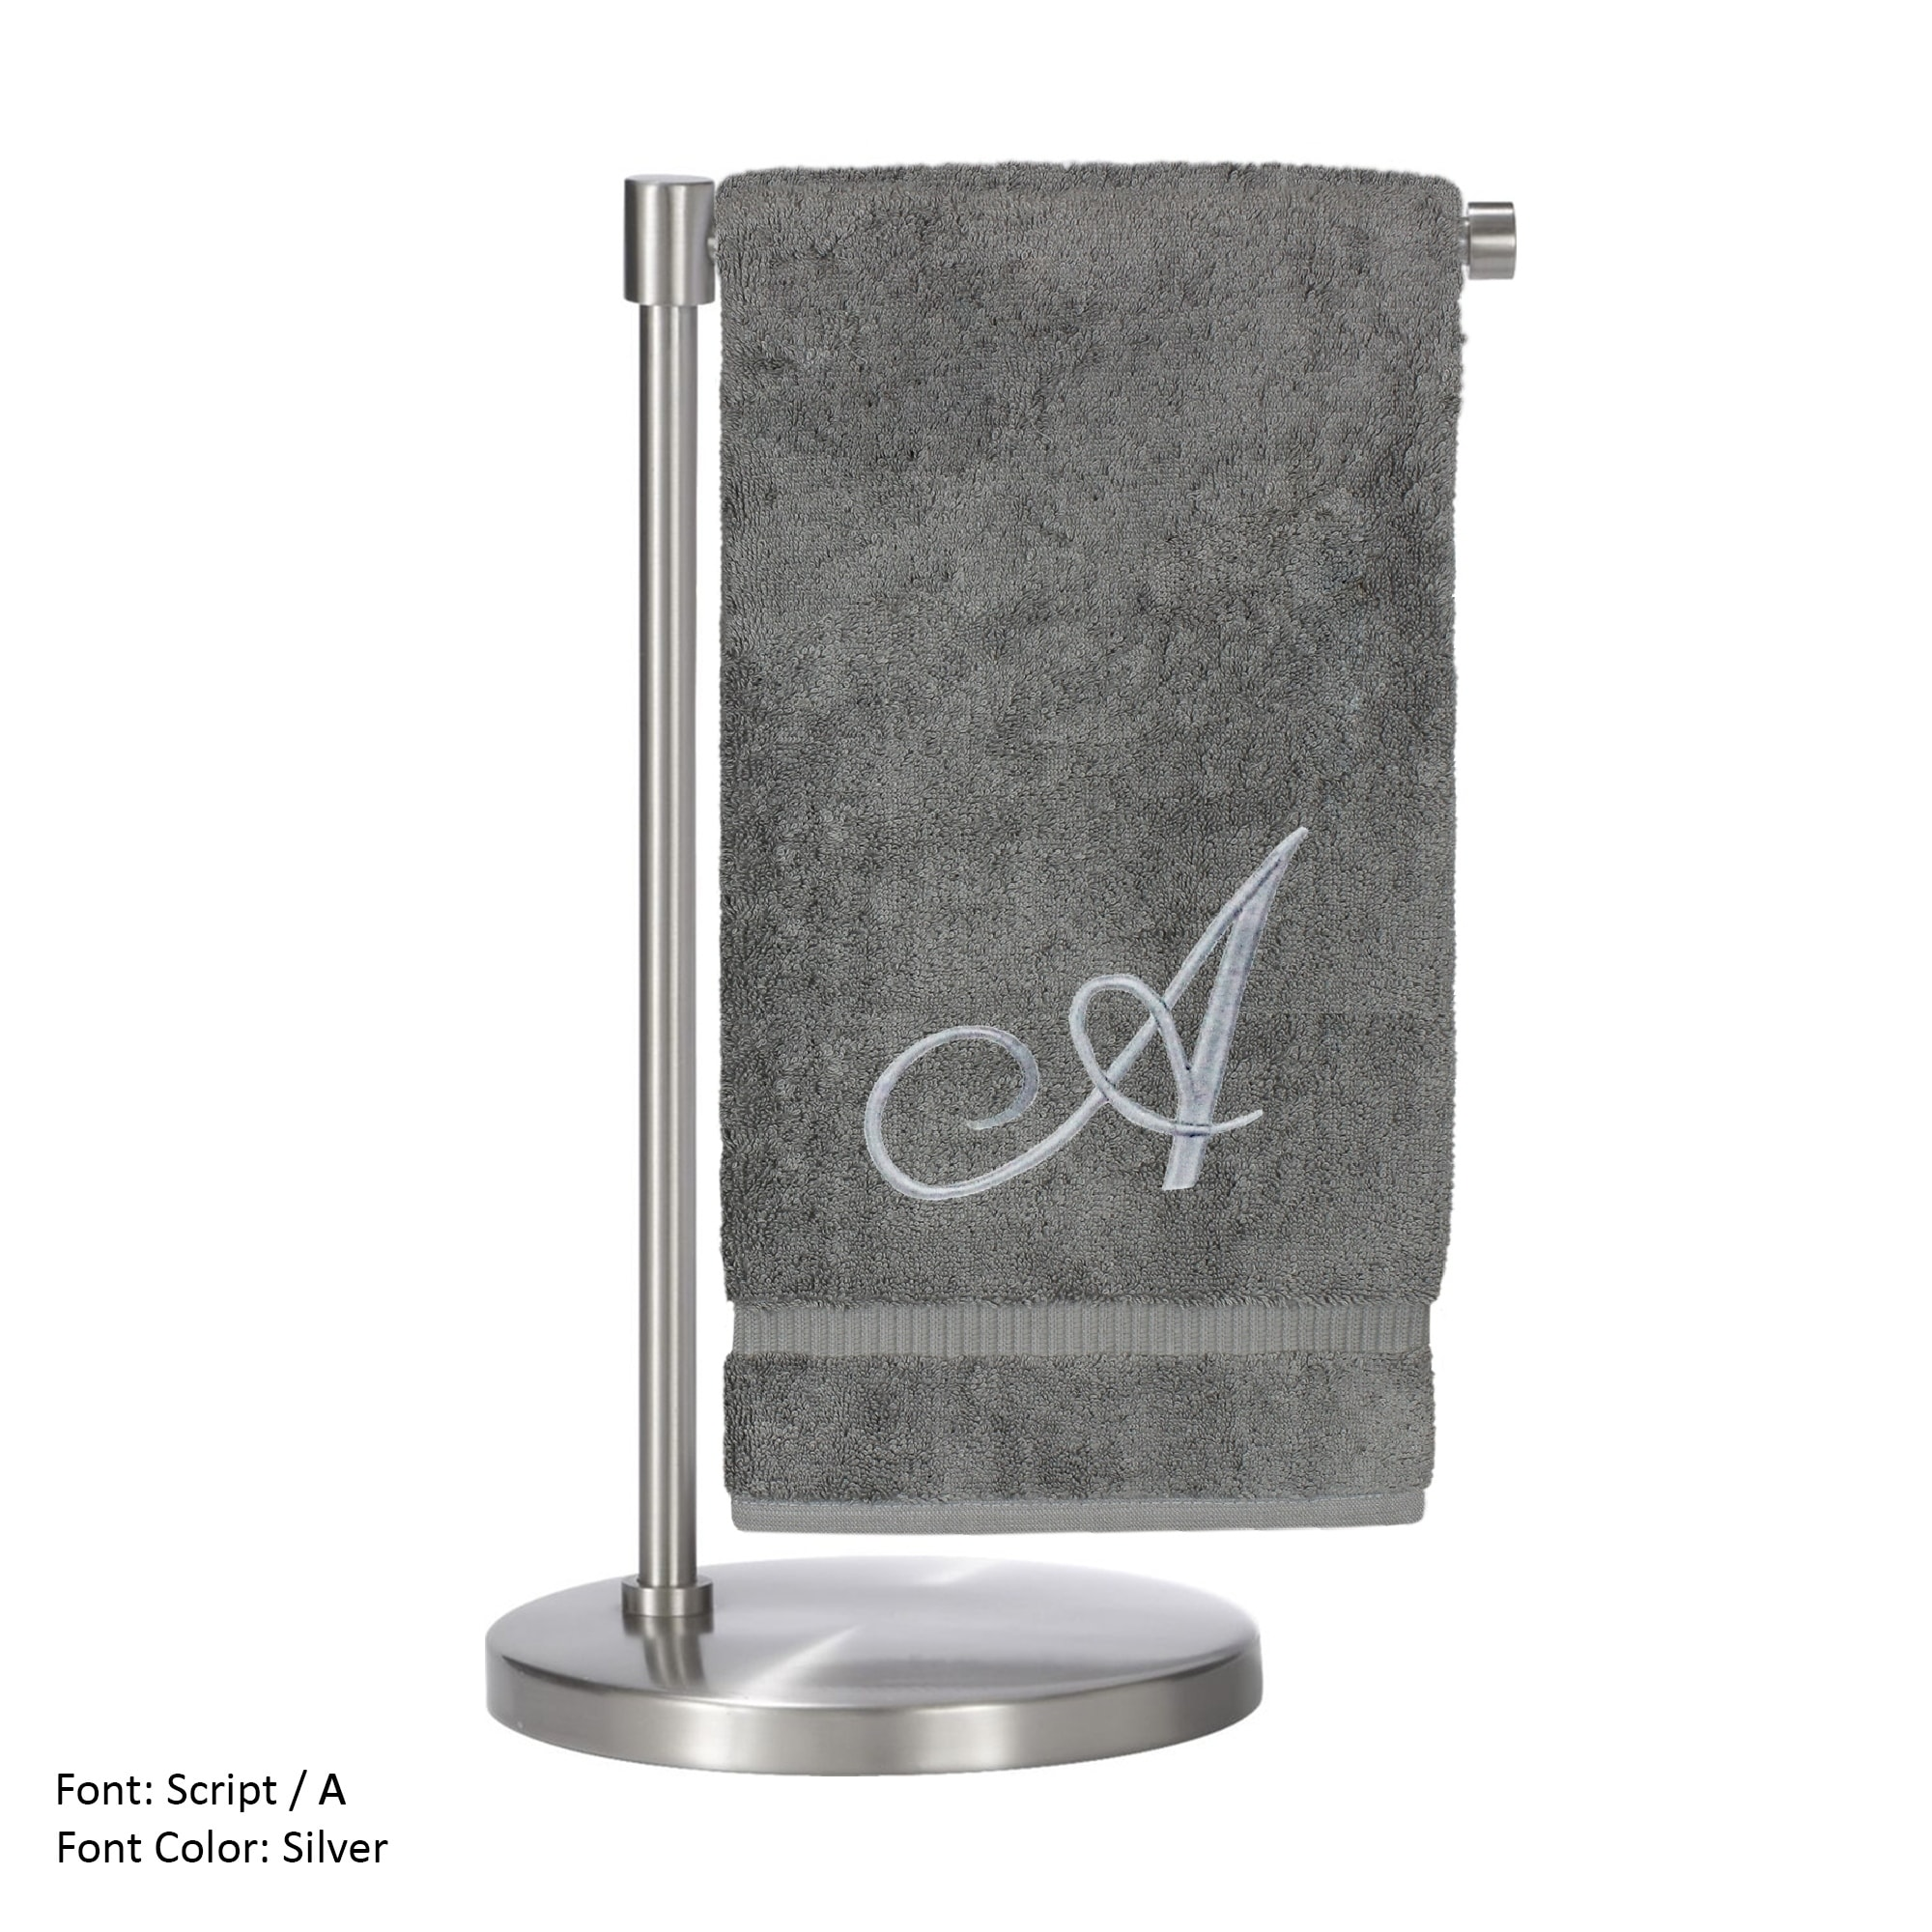 Monogrammed Bath Towel, Personalized Gift, 27 x 54 Inches - Set of 2 - Silver Script Embroidered Towel - 100% Turkish Cotton- Soft Terry Finish - For Bathroom,Kitchen or Spa - Script A Gray